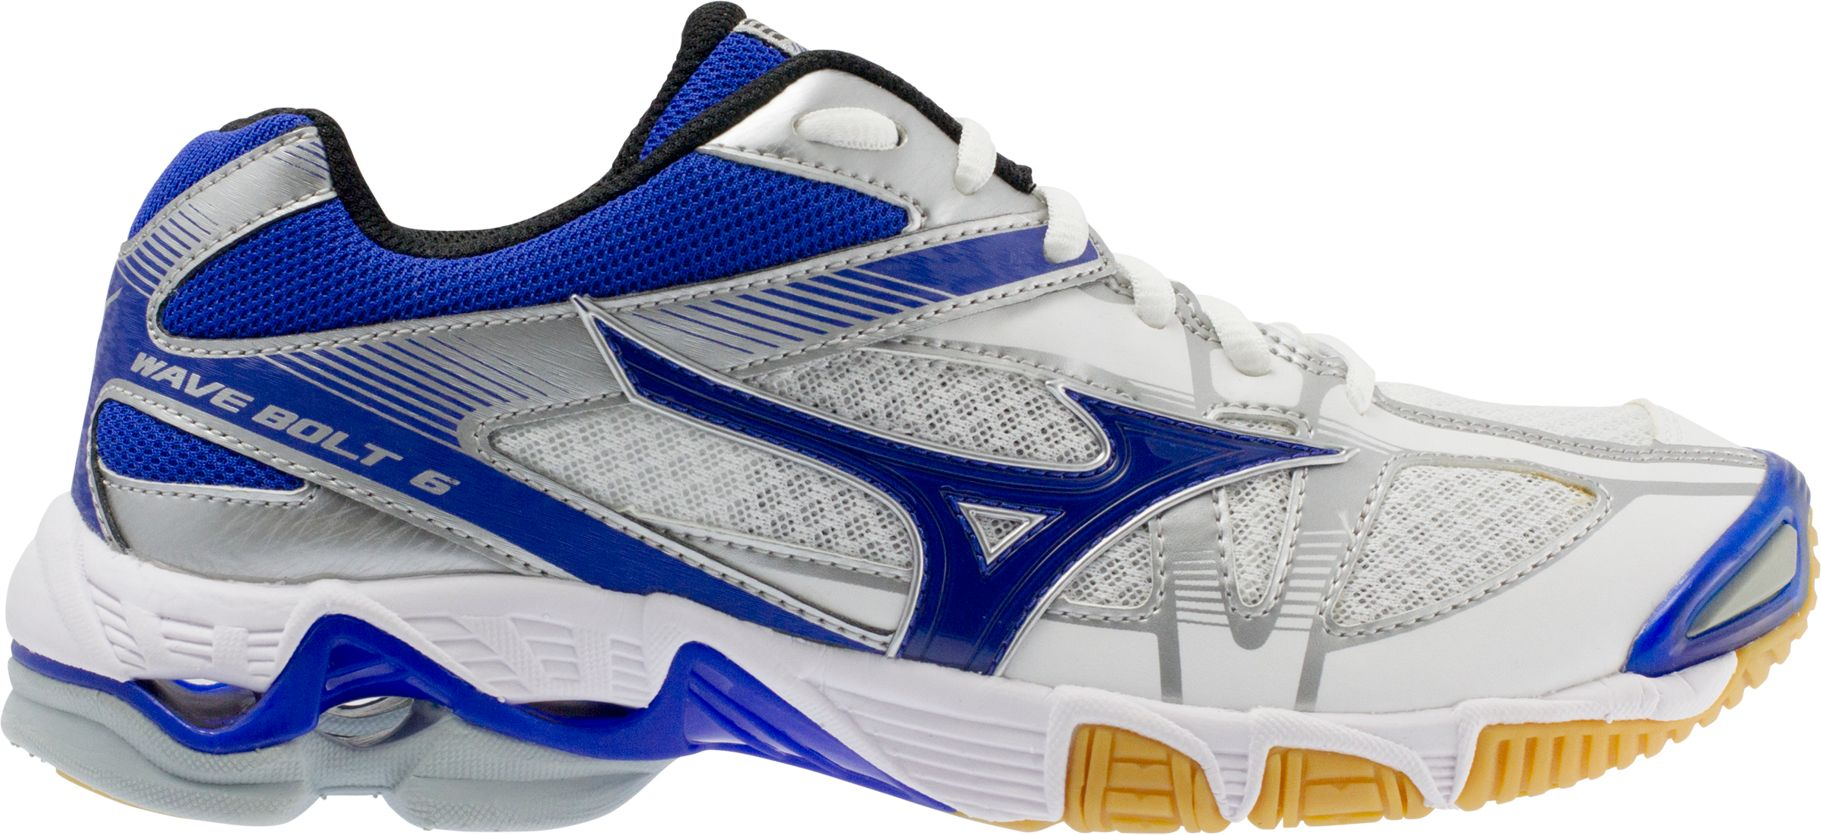 mizuno wave bolt 3 volleyball shoes hyperace